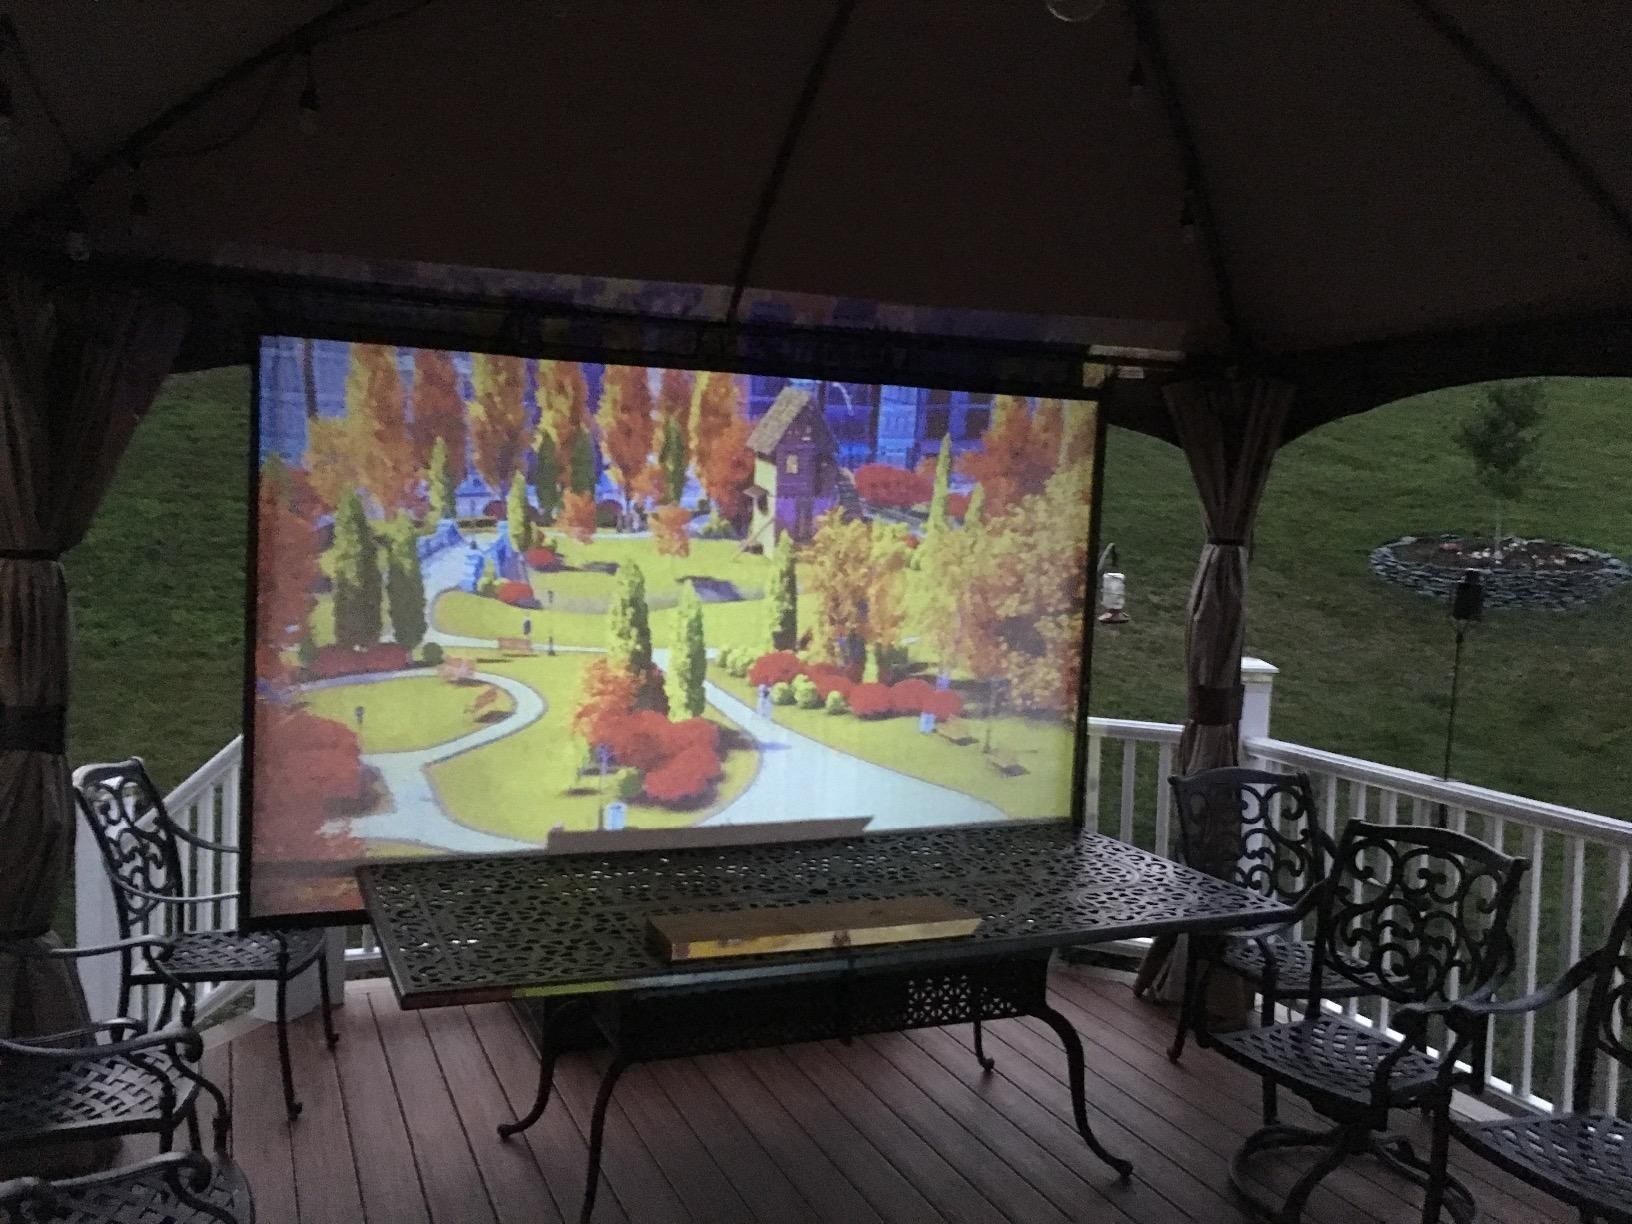 The projector displaying a movie on a 10-foot screen